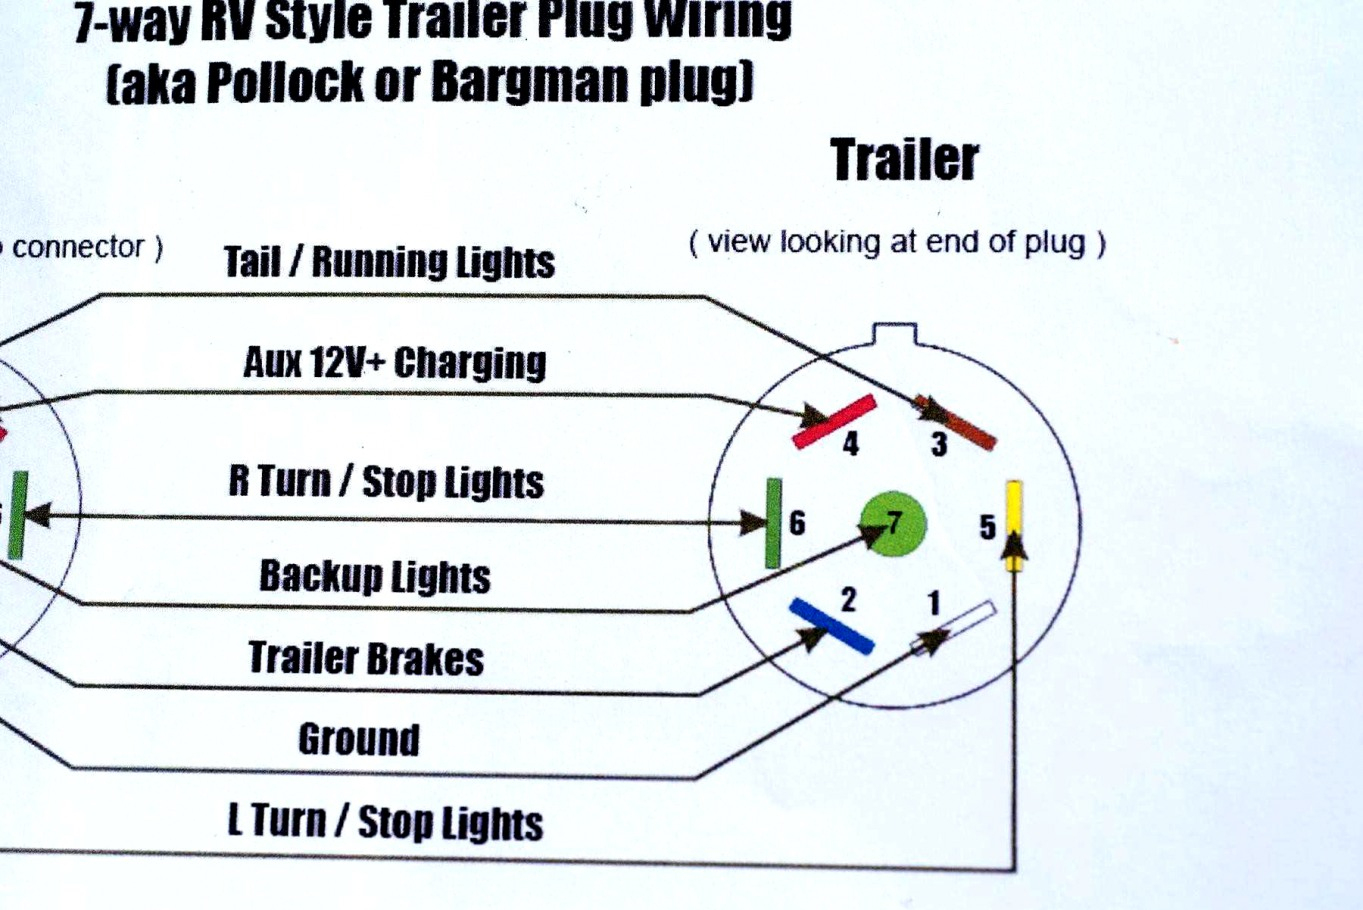 7 Way Semi Trailer Plug Wiring Diagram - Trusted Wiring Diagram - Semi Trailer Wiring Diagram 7 Way